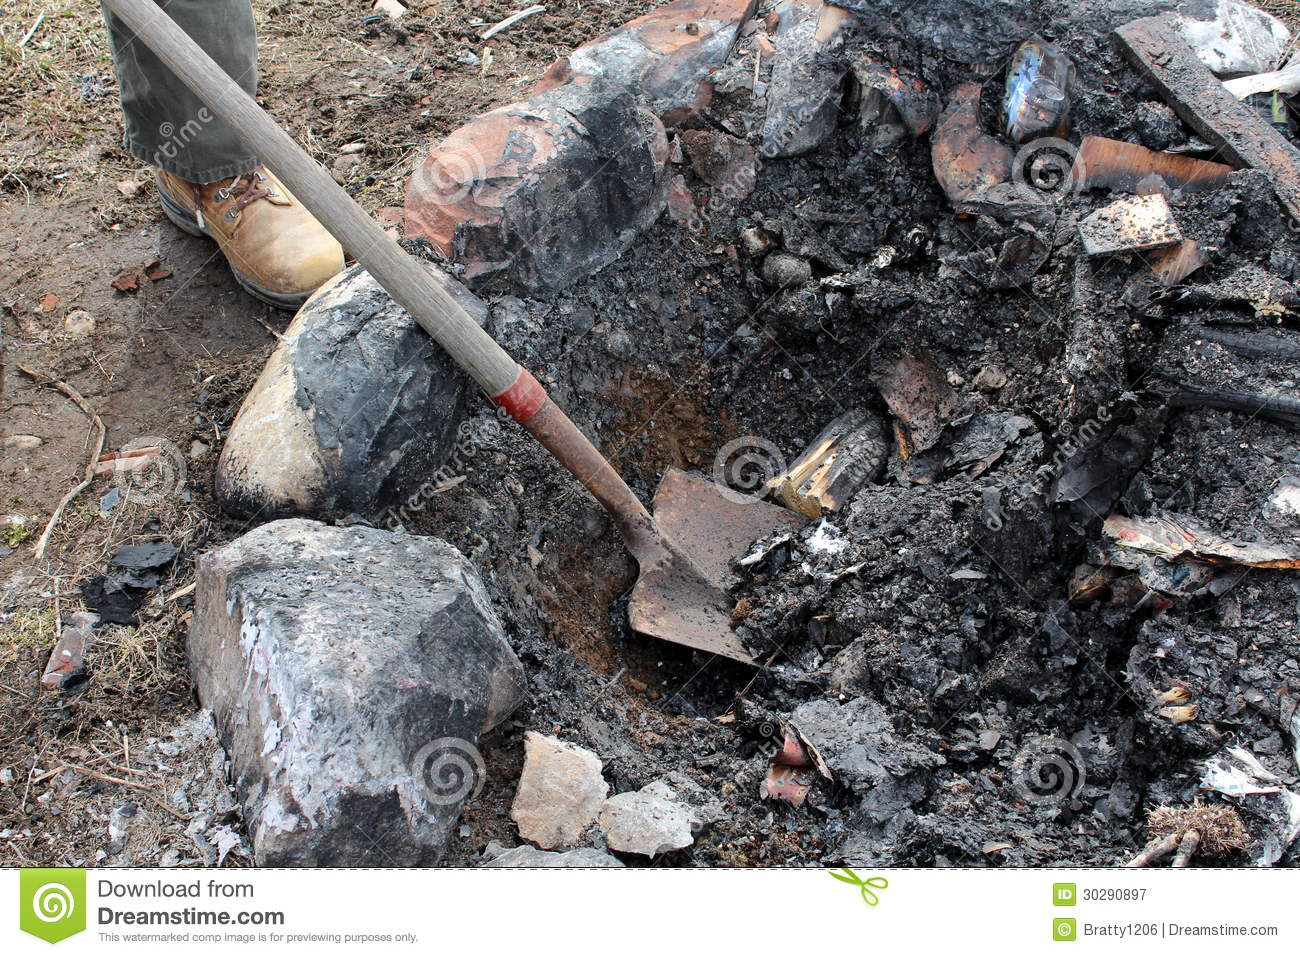 Cleaning Fire Pit : Man in workboots cleaning out fire pit with shovel stock